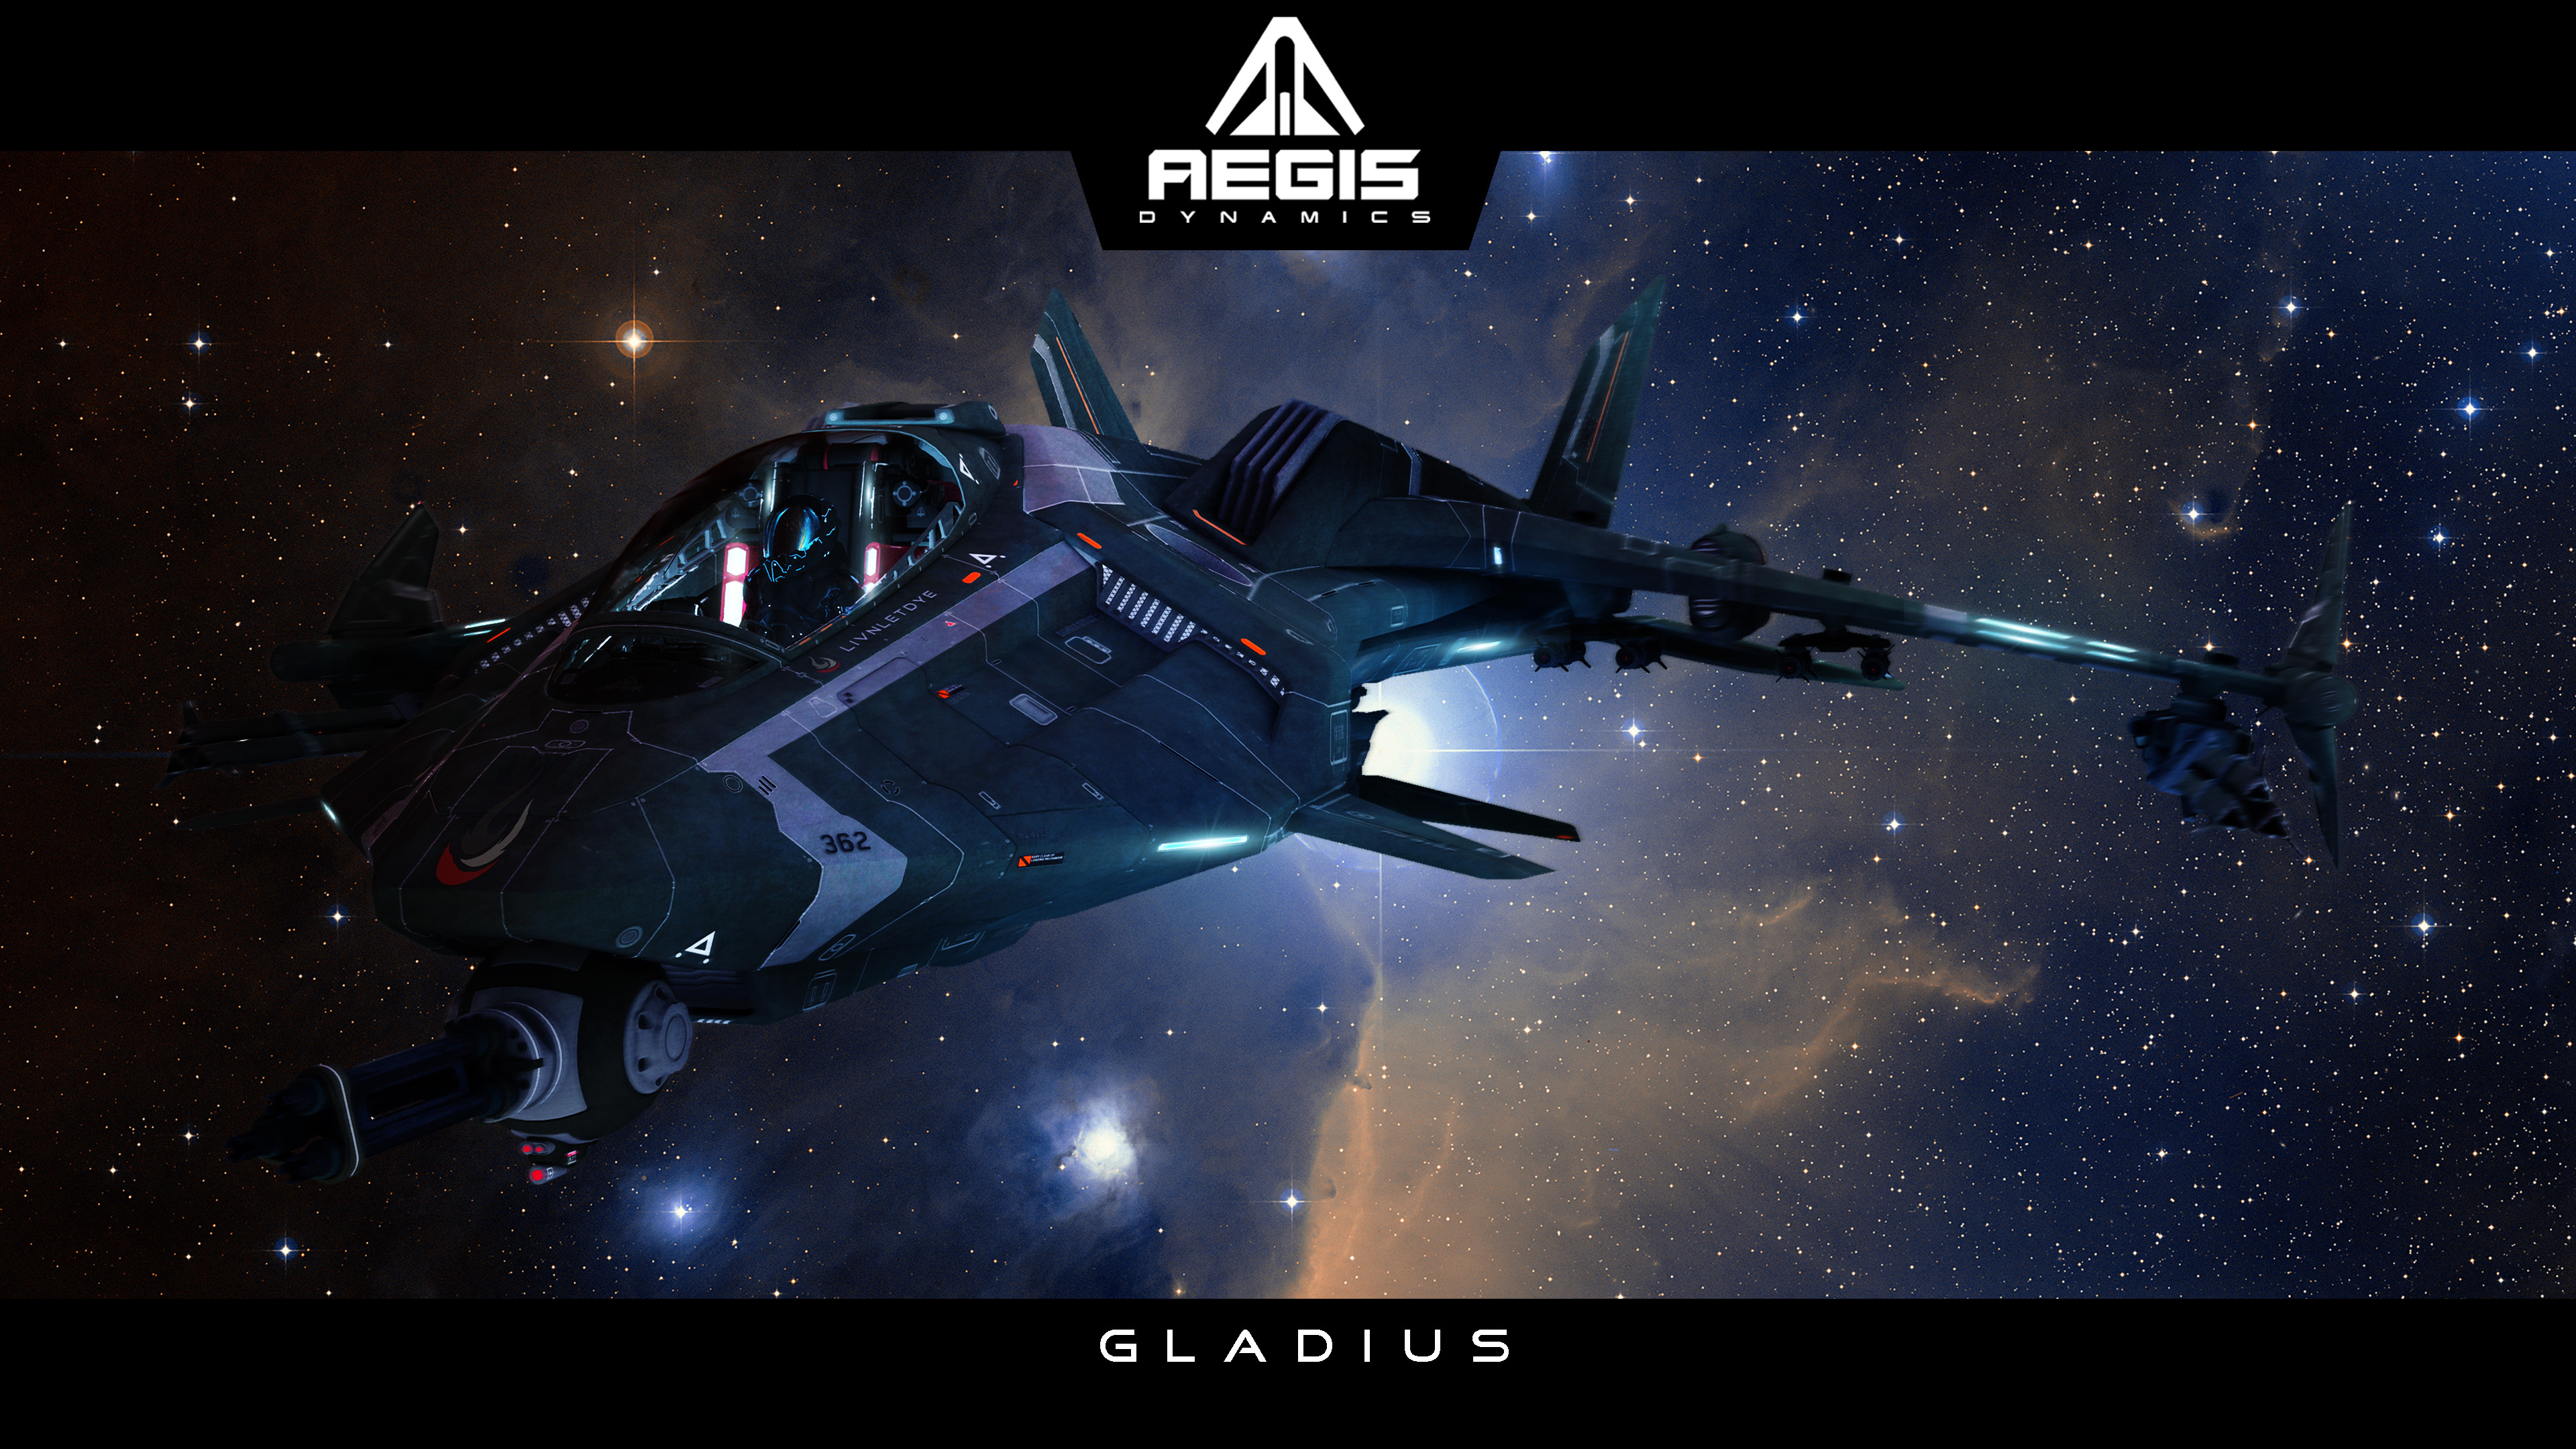 I had so much fun doing the Gladius wallpaper I decided to do a 3840x2160